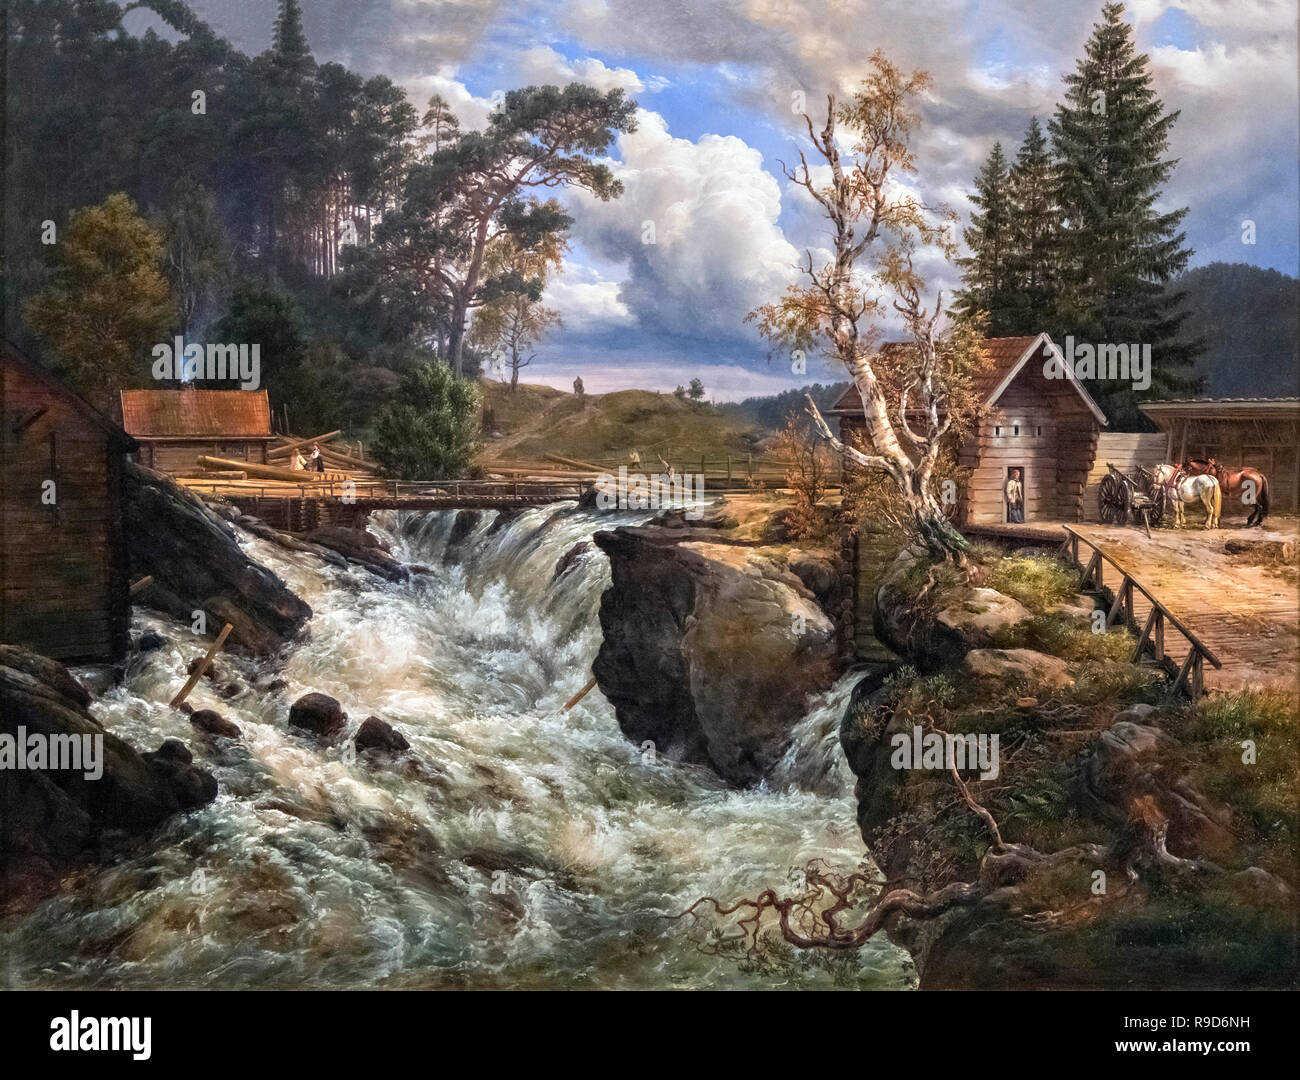 The Upper Falls of the Honefoss (Landskap med Foss) by J C Dahl (Johan Christian Claussen Dahl: 1788-1857), oil on canvas, 1835 - Stock Image